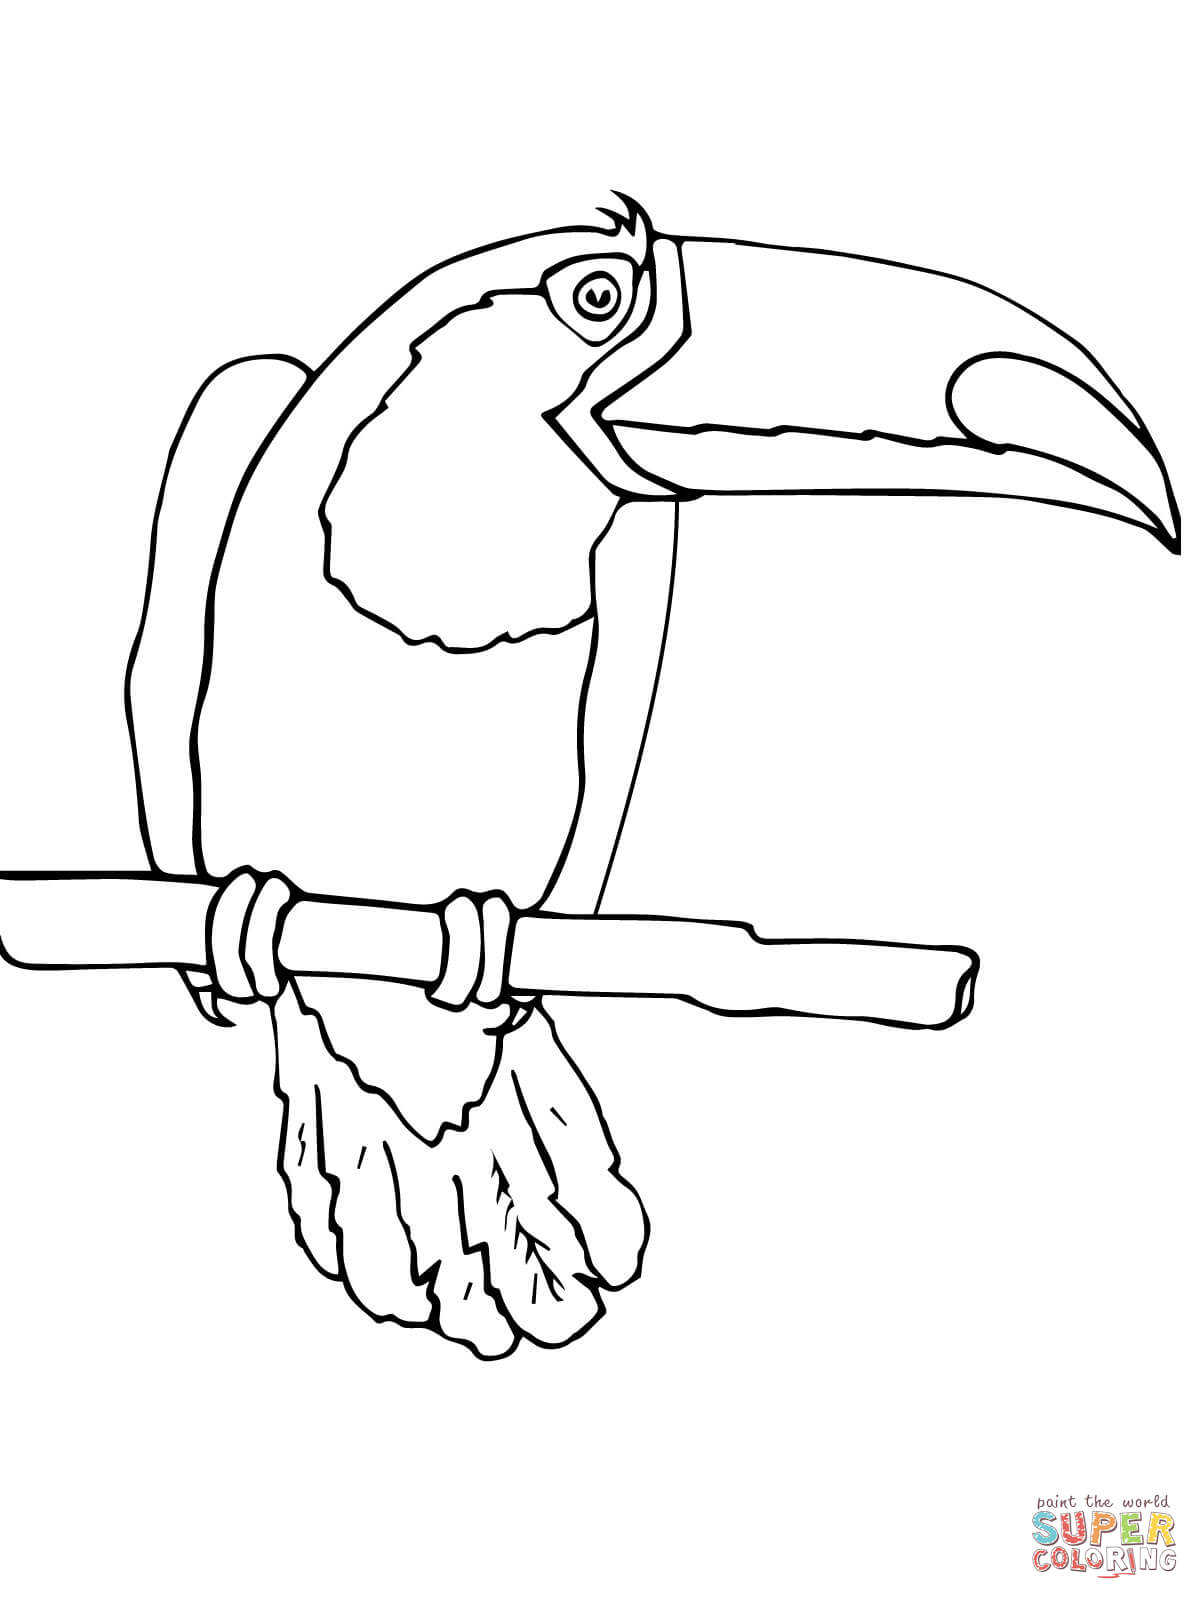 Keel-billed Toucan coloring #6, Download drawings